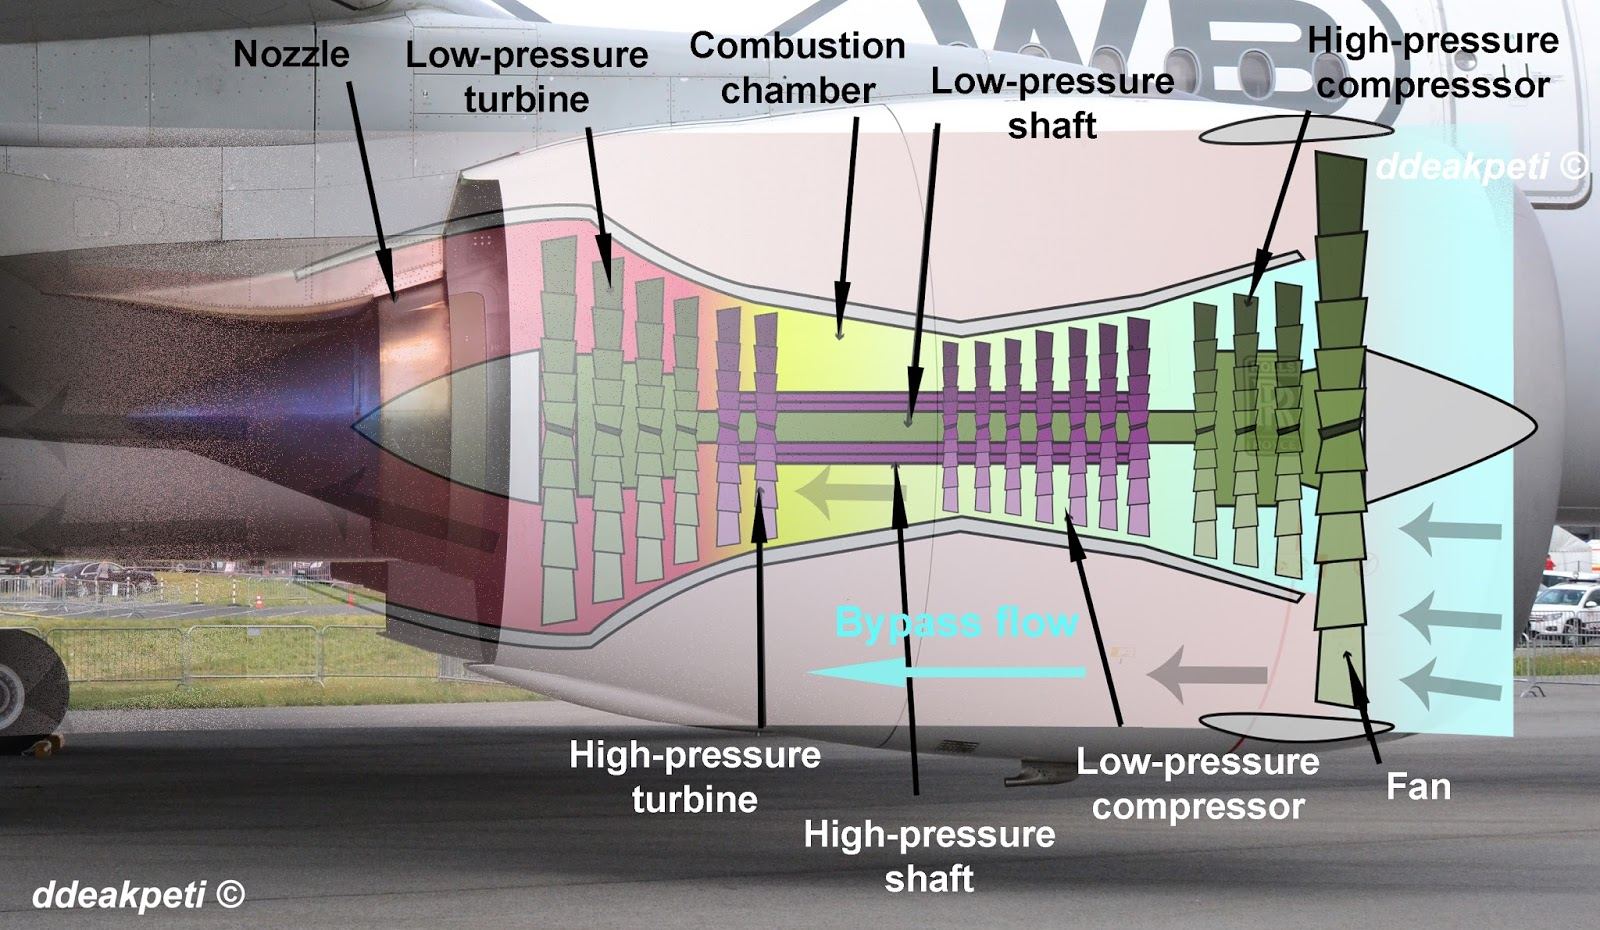 Becoming An Engineer Keep Away From Jet Engine 747 Diagram Turbojet Schematic Illustration Of Major Components On Trent Xwb Airbus A350 941 F Wwcf